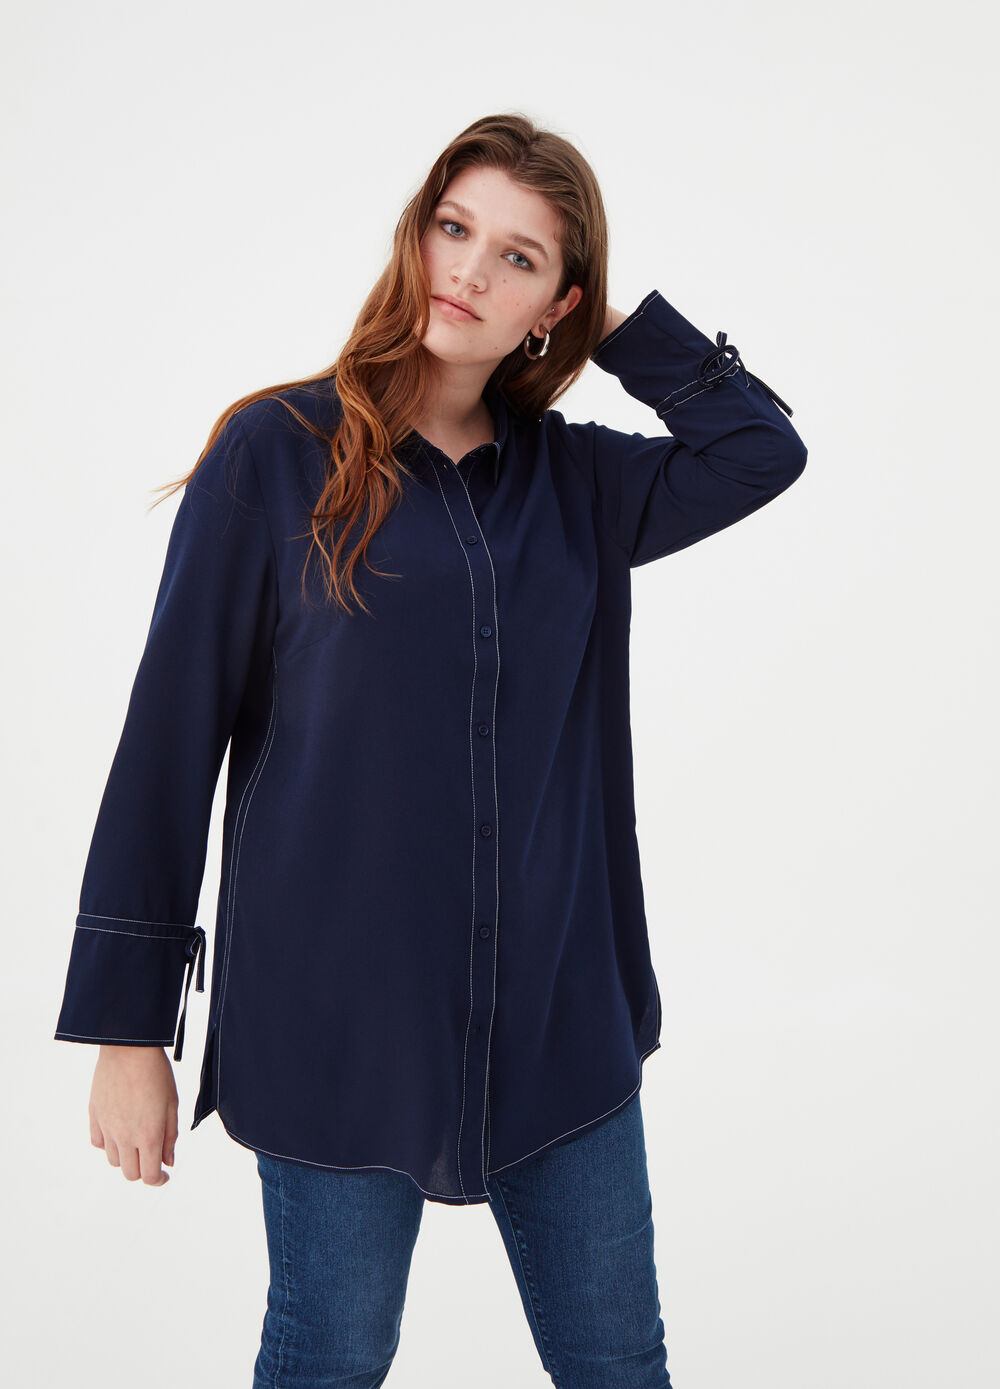 Curvy shirt with contrast stitching